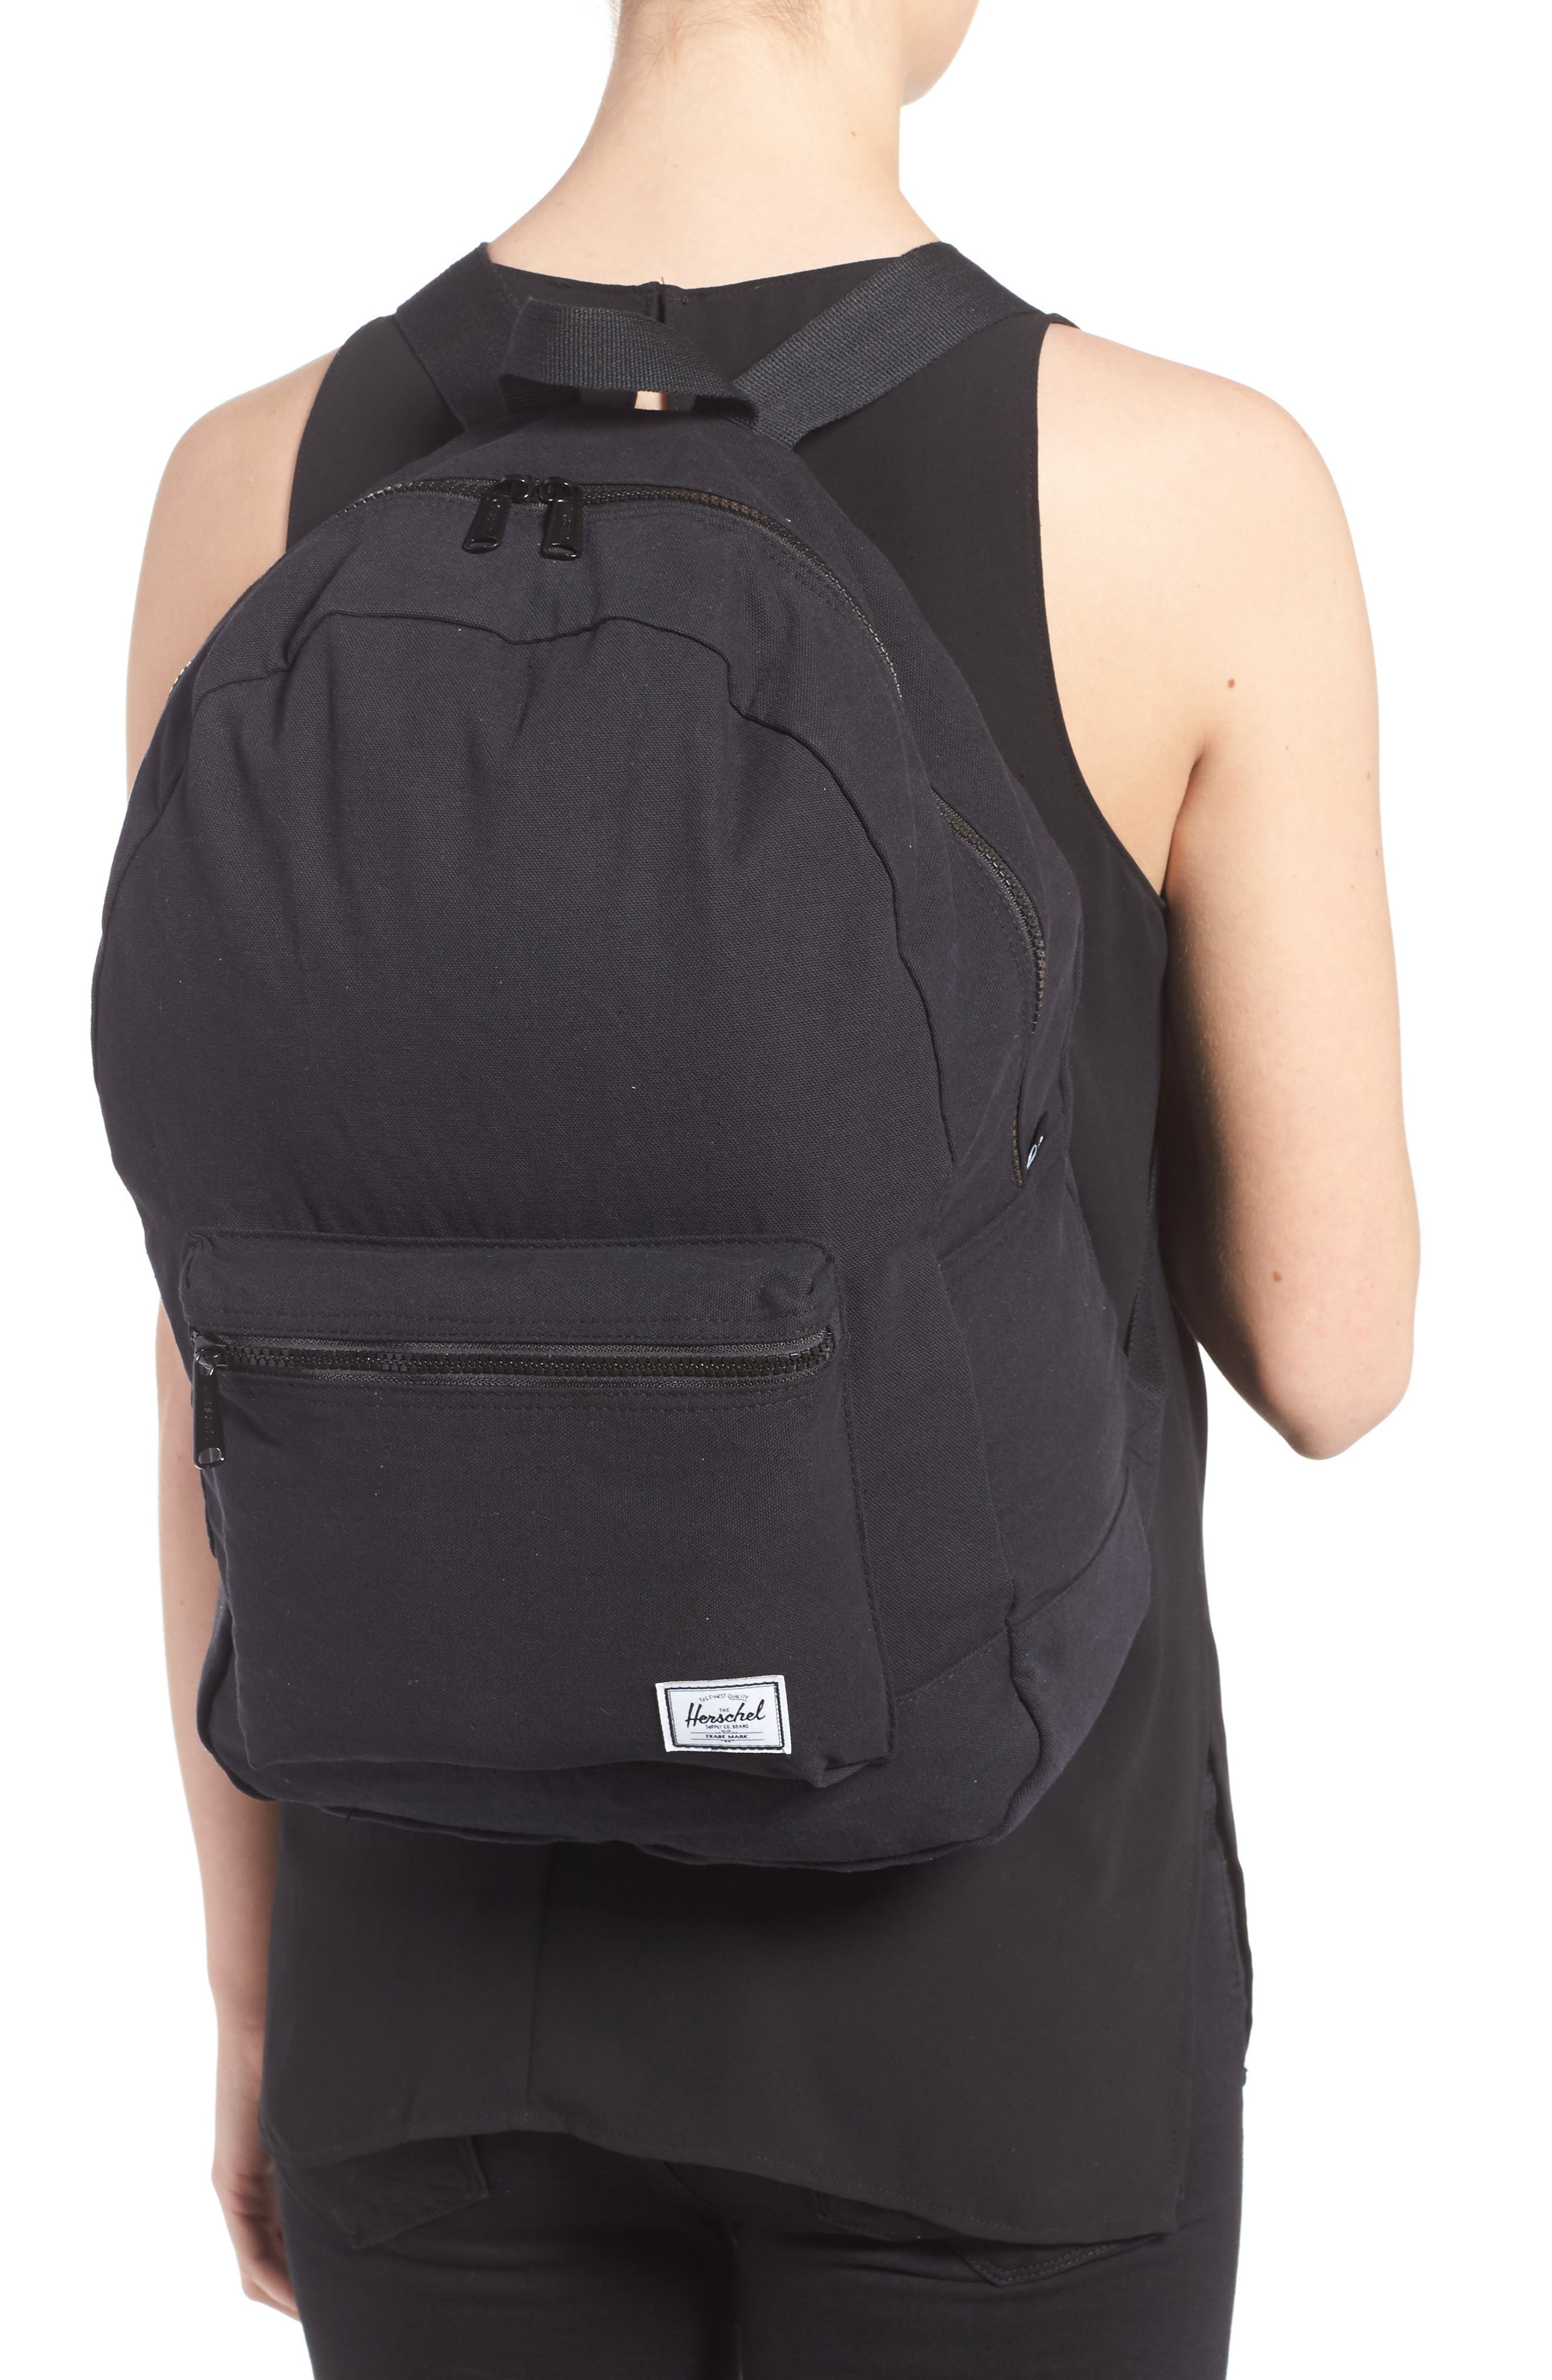 Cotton Casuals Daypack Backpack,                             Alternate thumbnail 13, color,